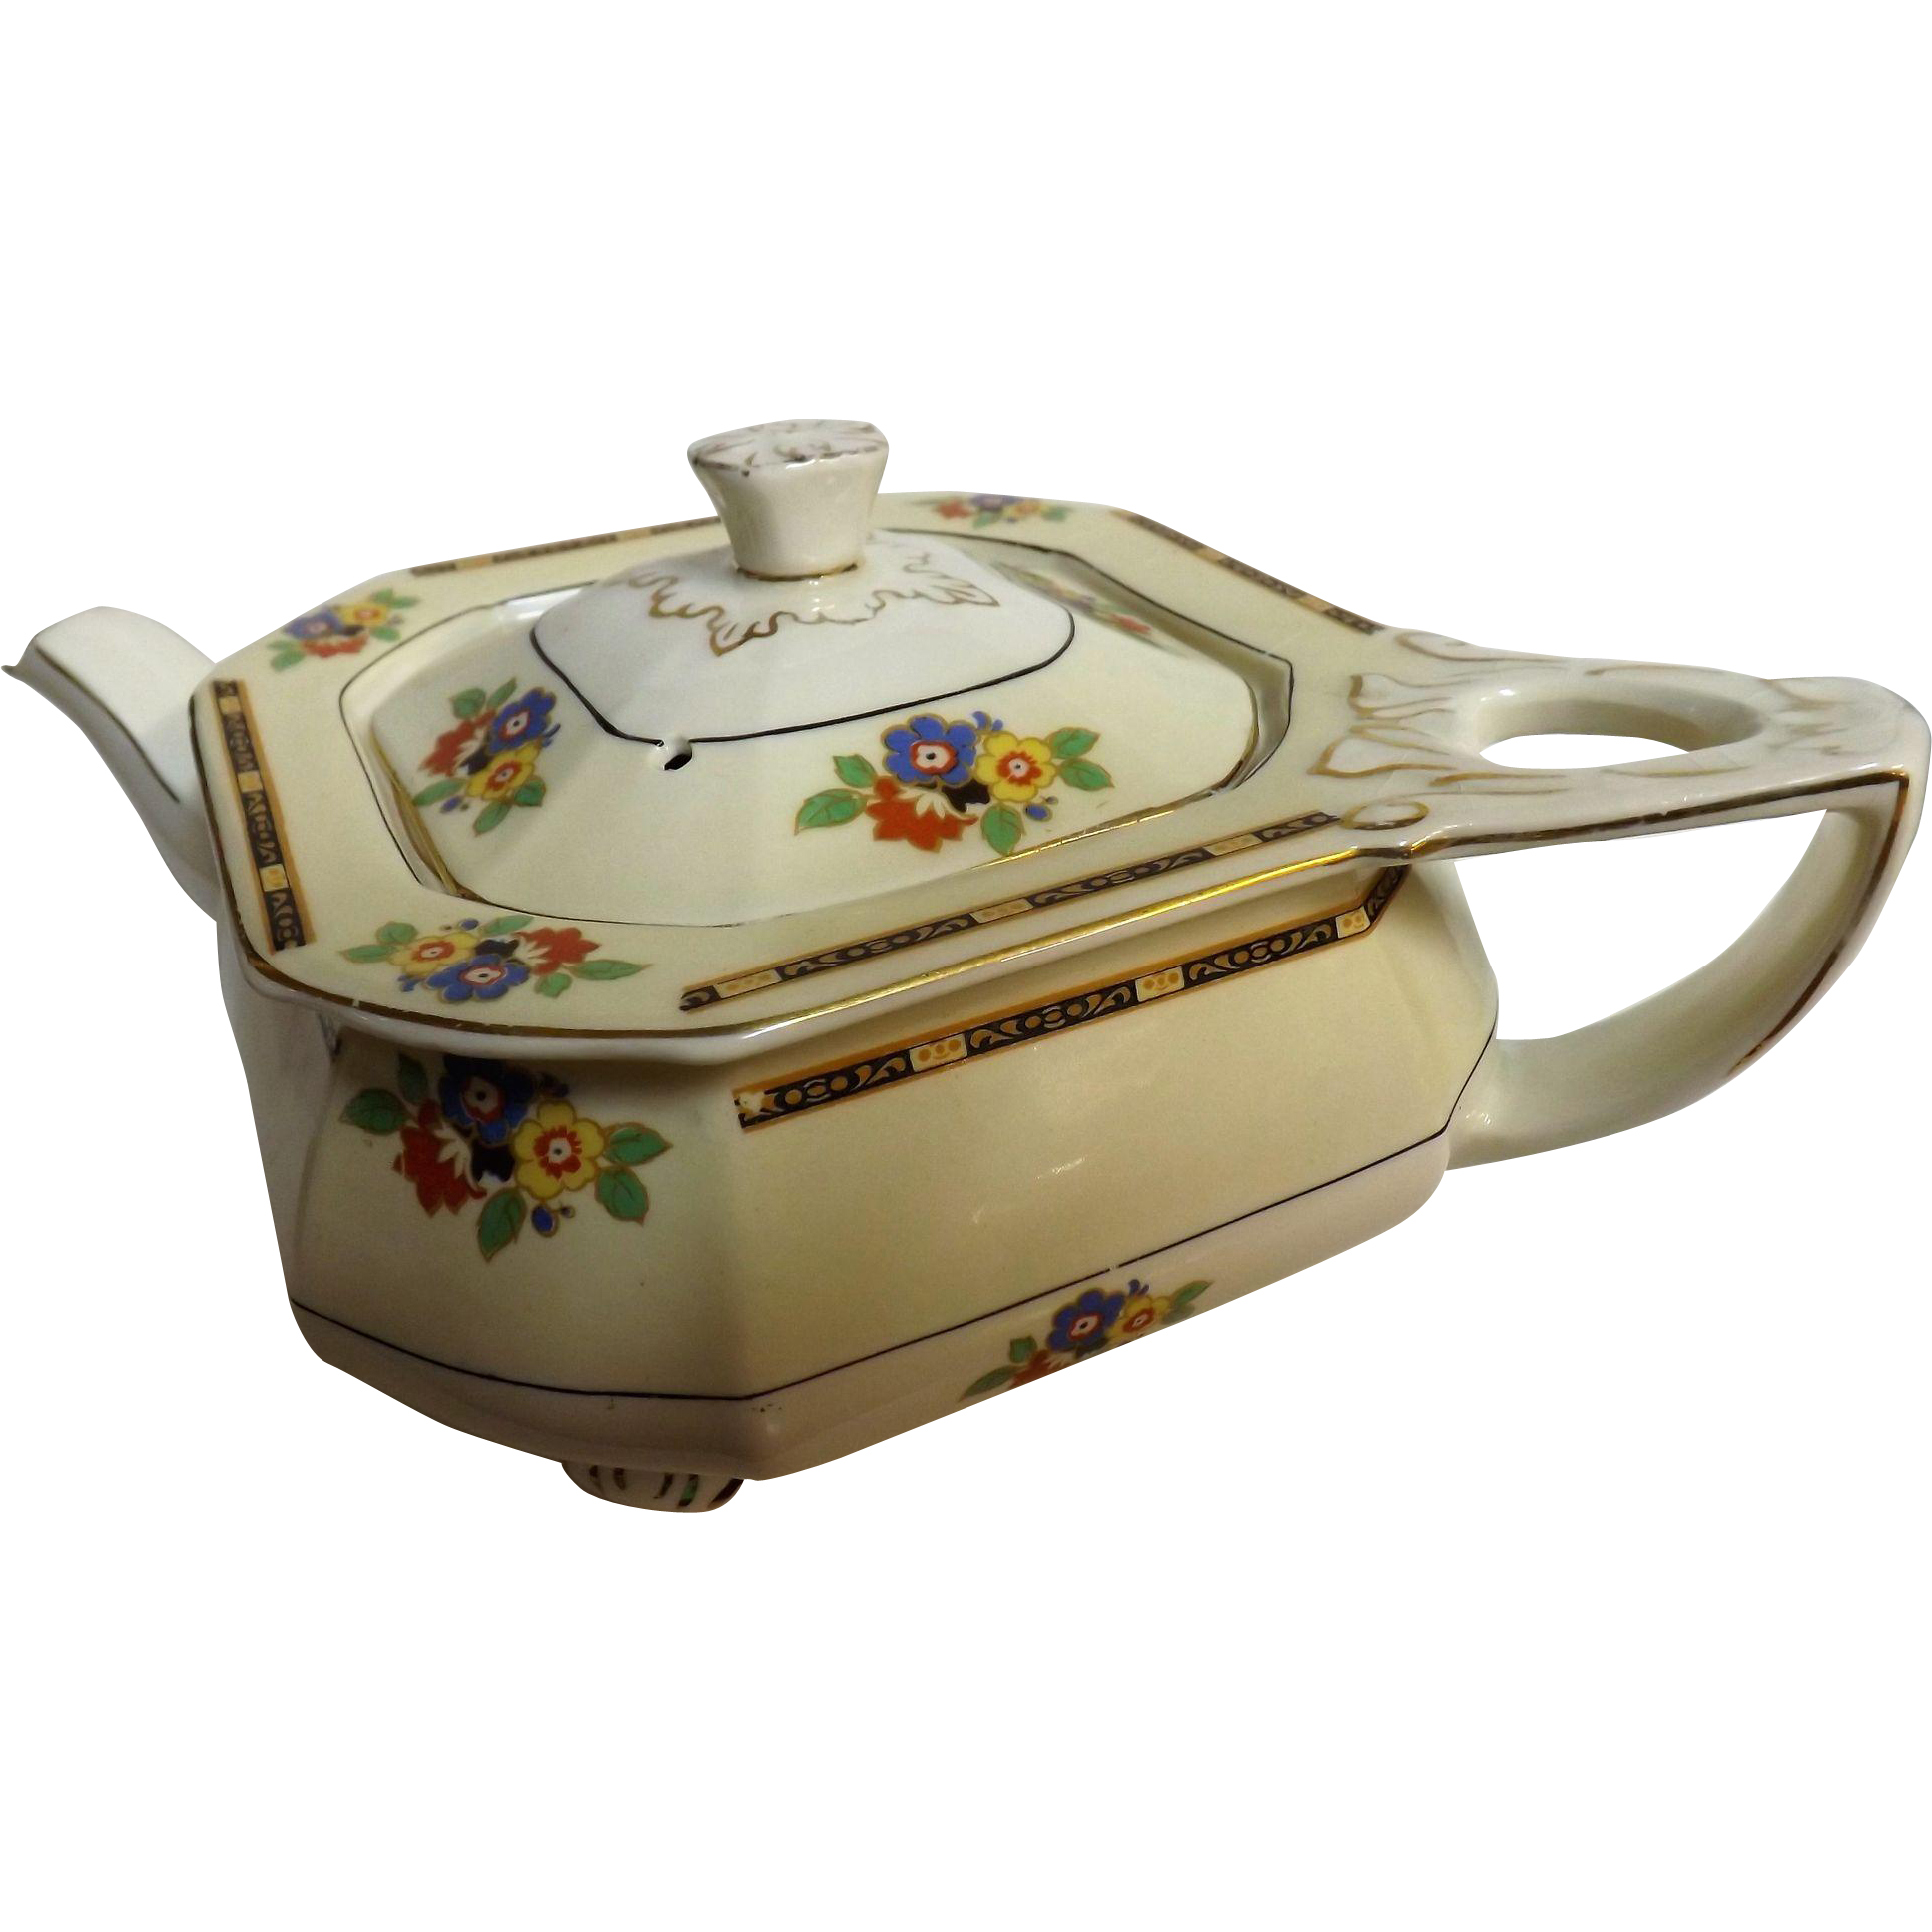 Art Deco Teapot By W.H. Grindley -England Circa 1925-1930